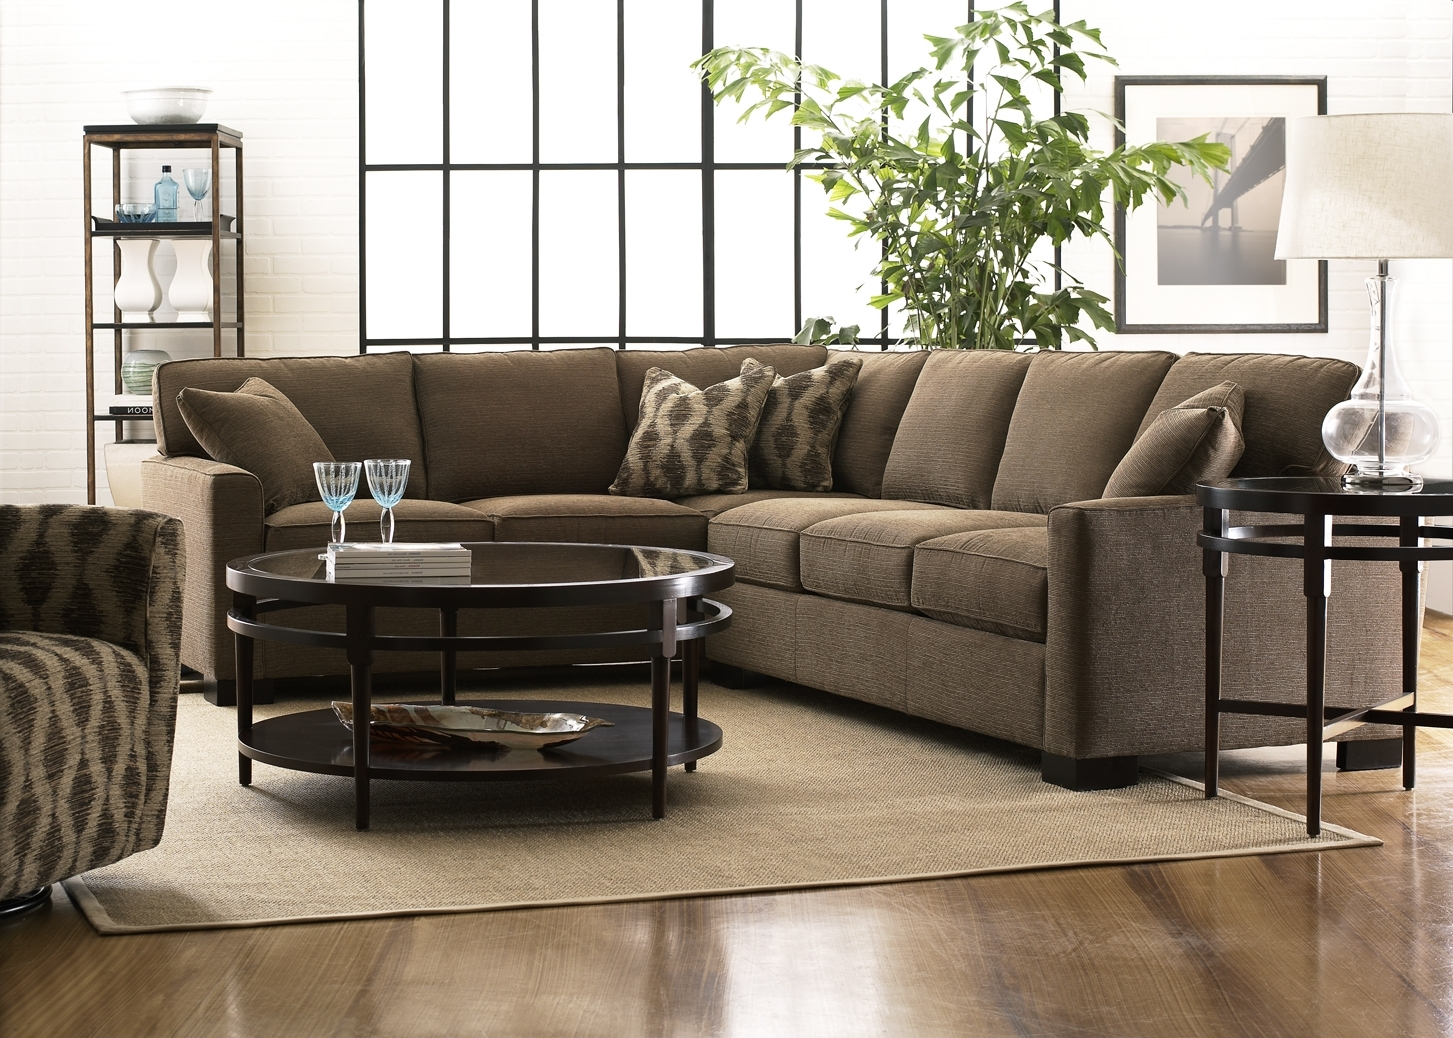 Newest Sectional Sofas For Small Spaces With Recliners Within Small Room Design: Best Sofas For Small Living Rooms Sectional (View 8 of 15)